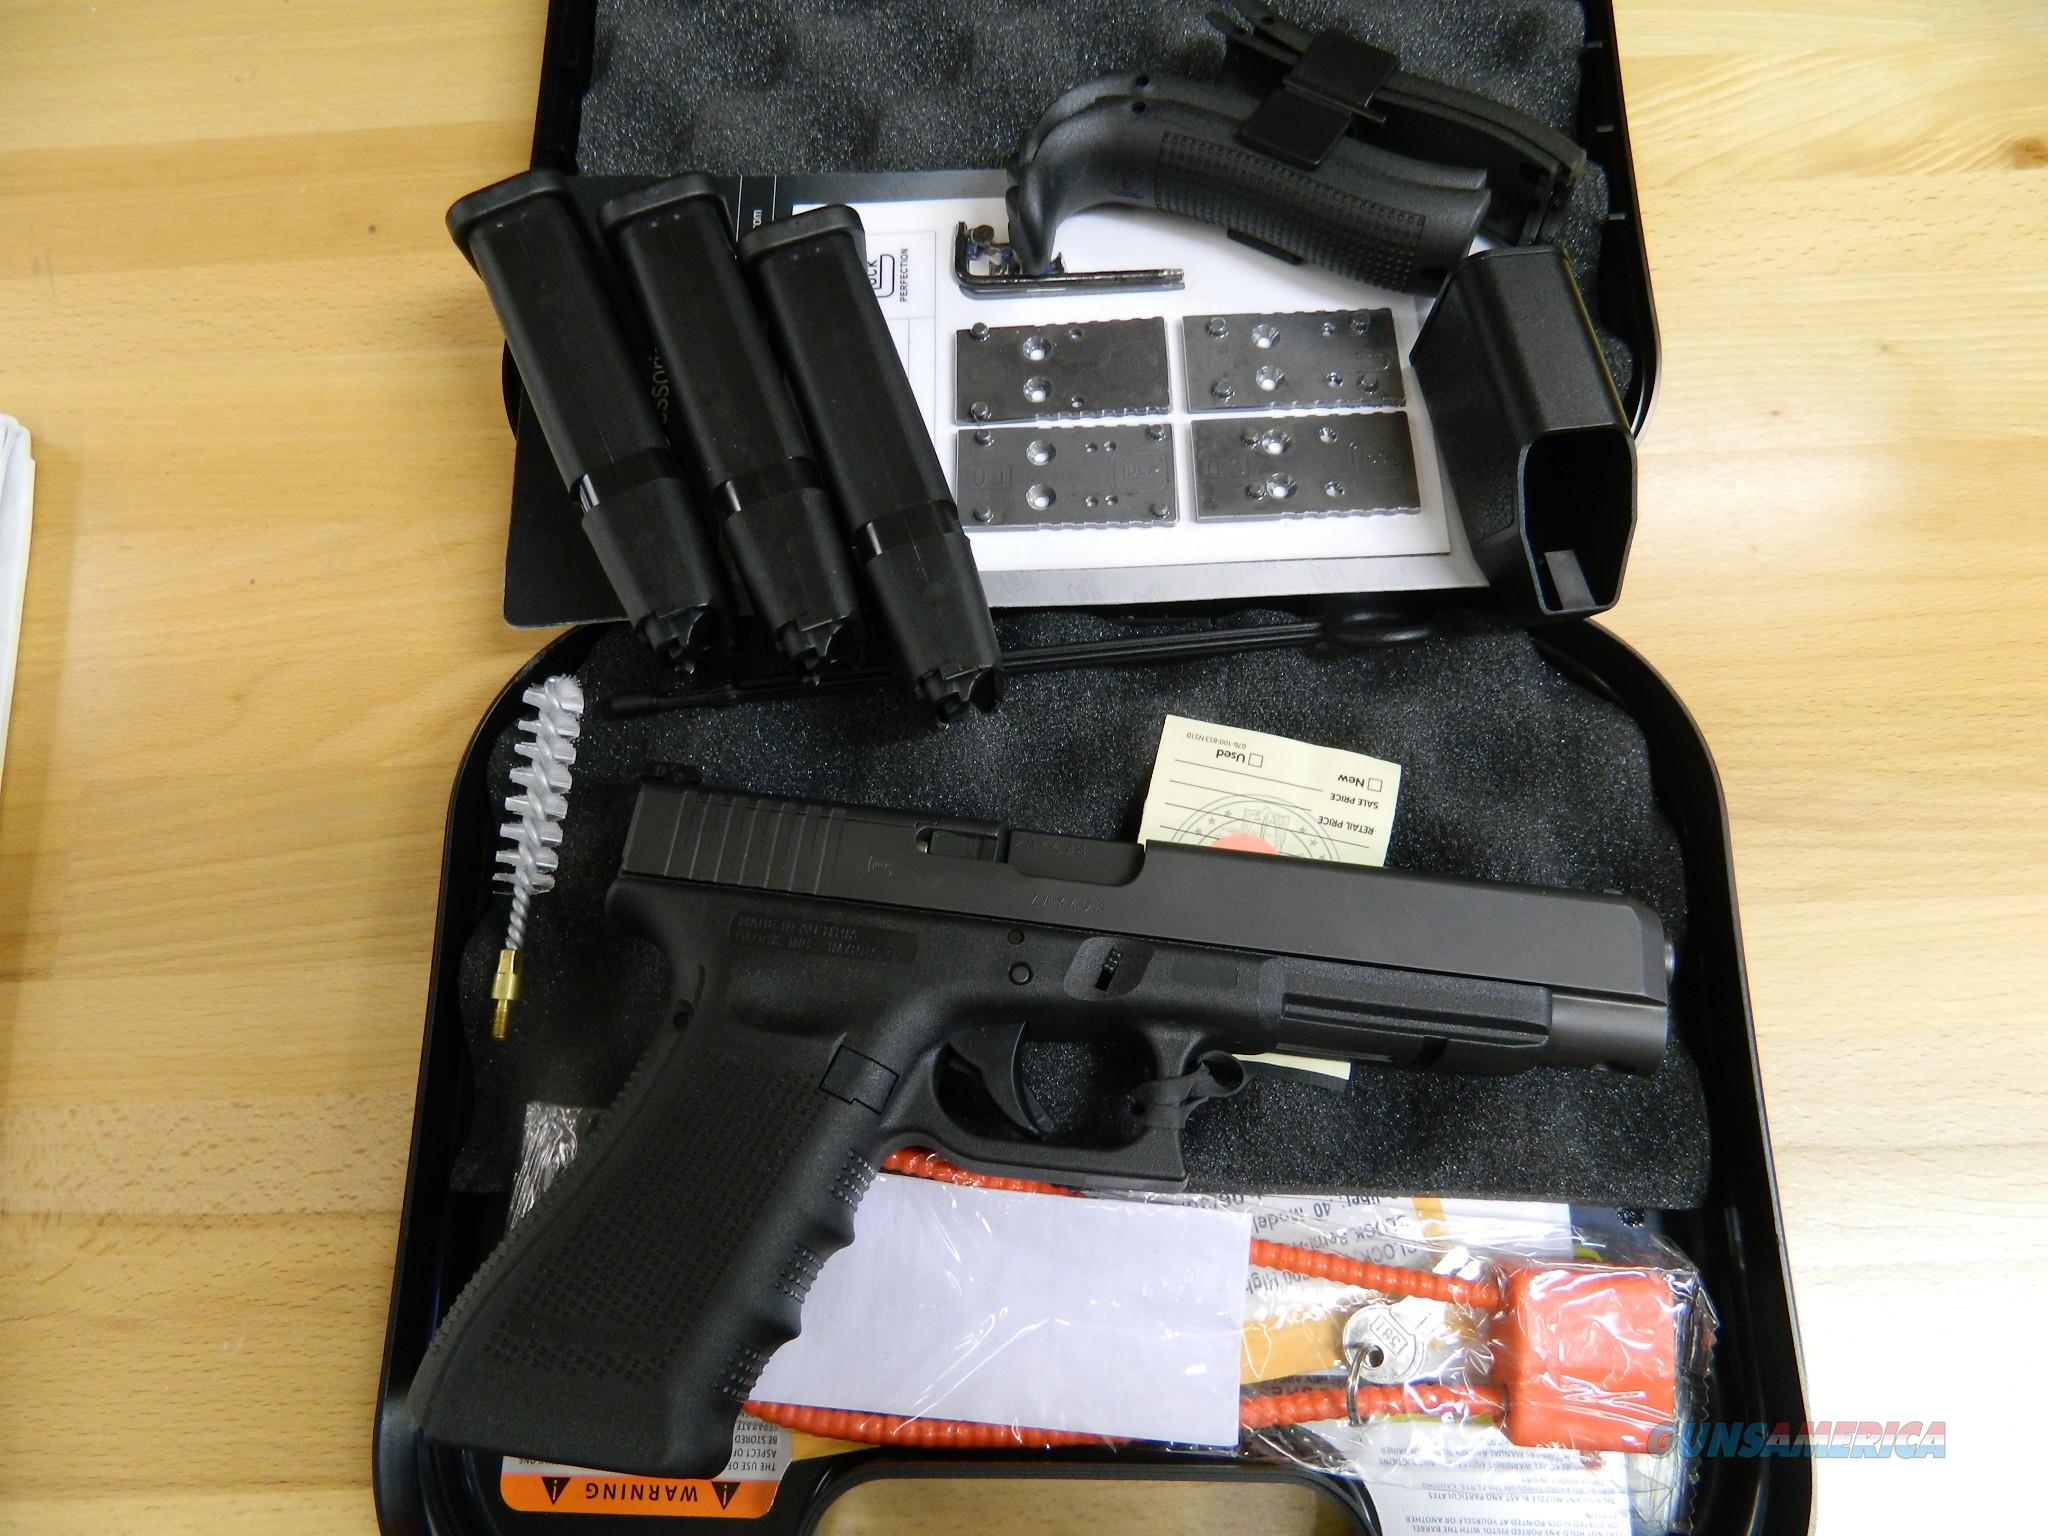 GLOCK 35Gen5 with MOS / adjustable sight NIB  Guns > Pistols > Glock Pistols > 35